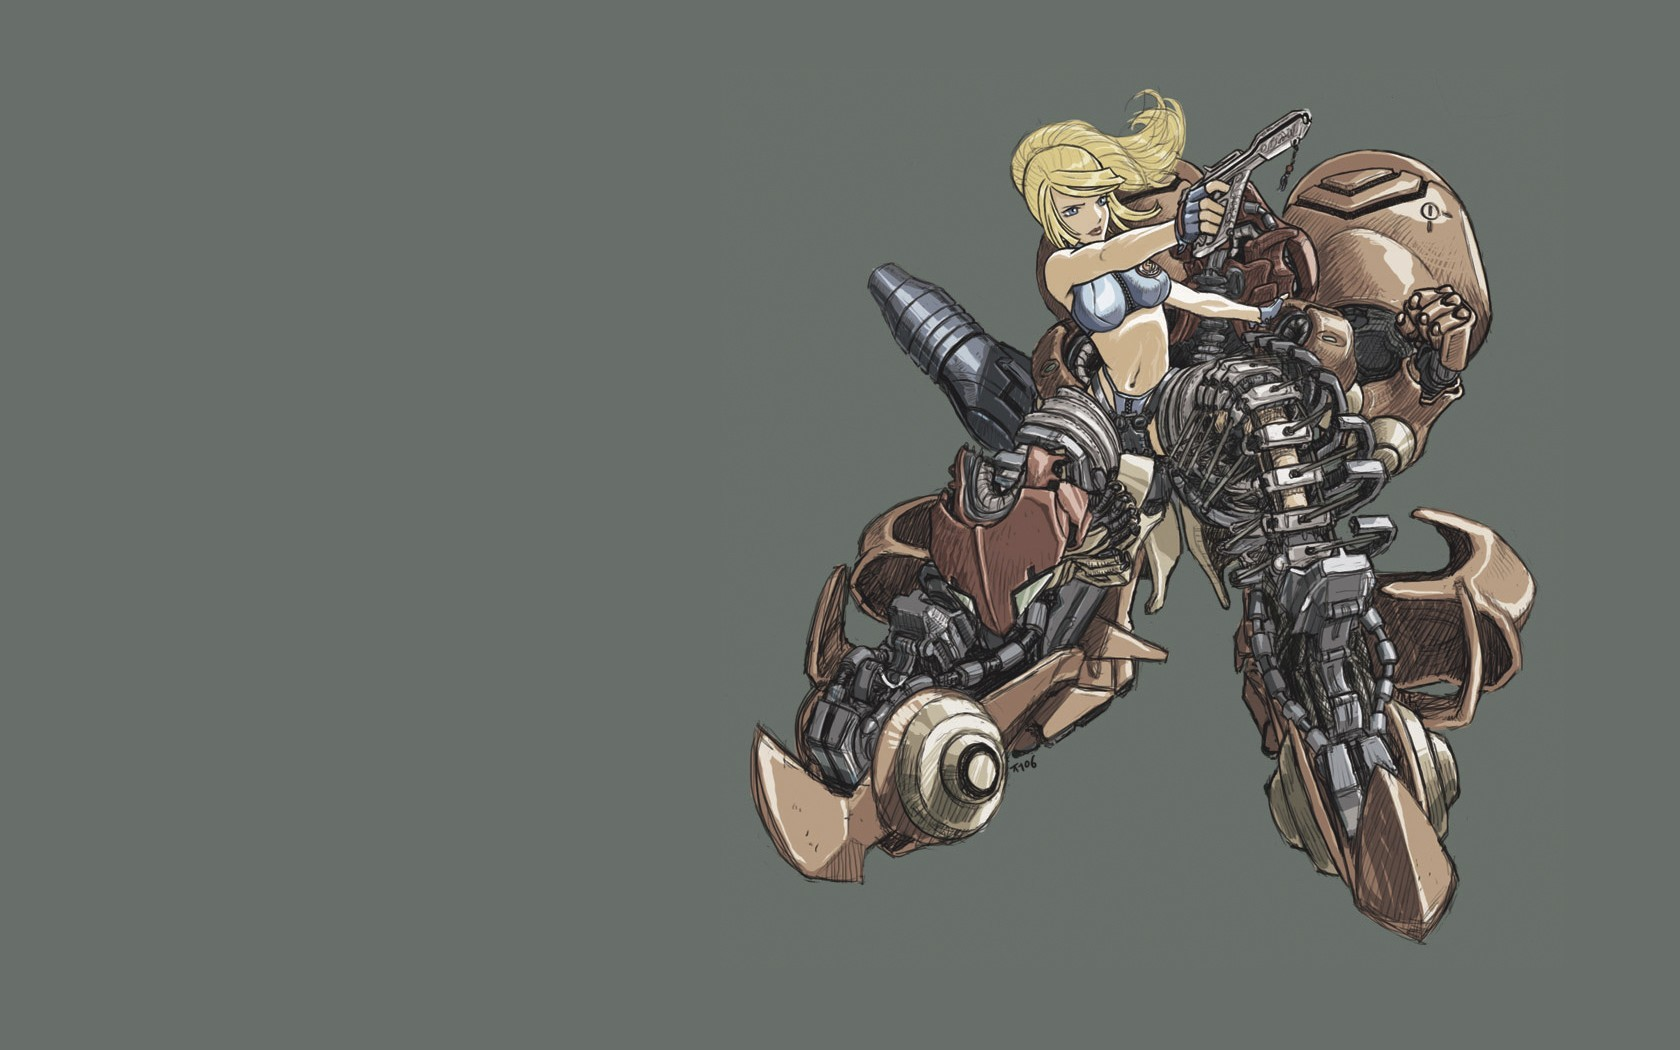 blondes metroid woman Guns HD Wallpaper